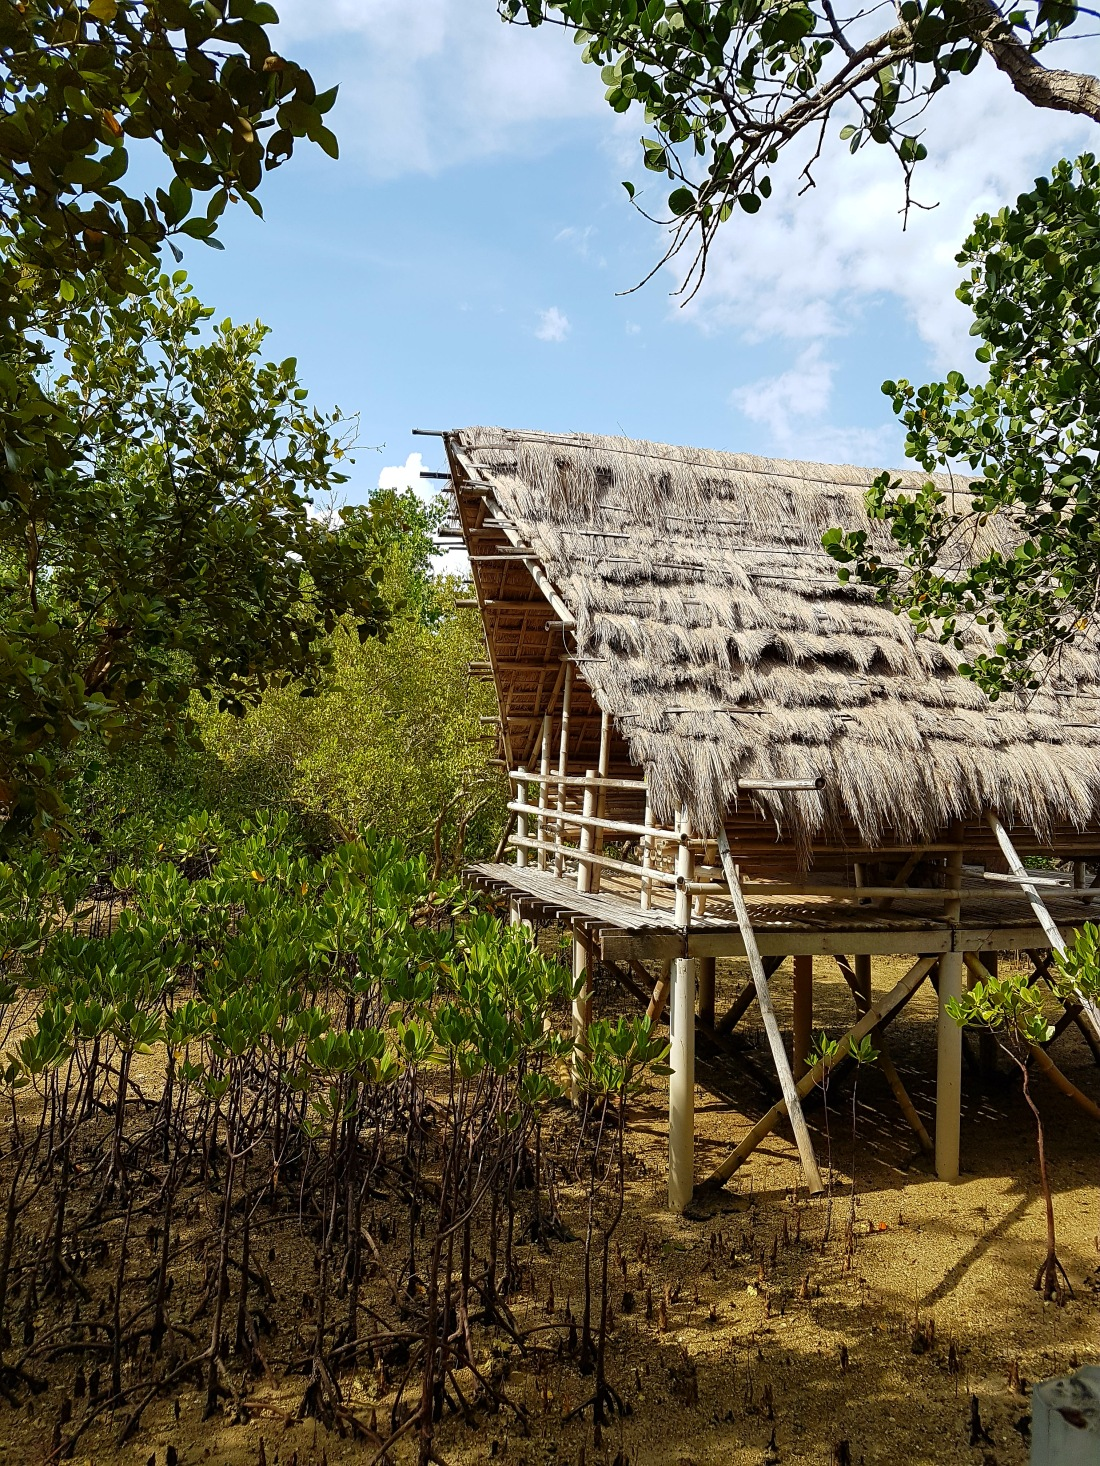 Where to stay in Negros